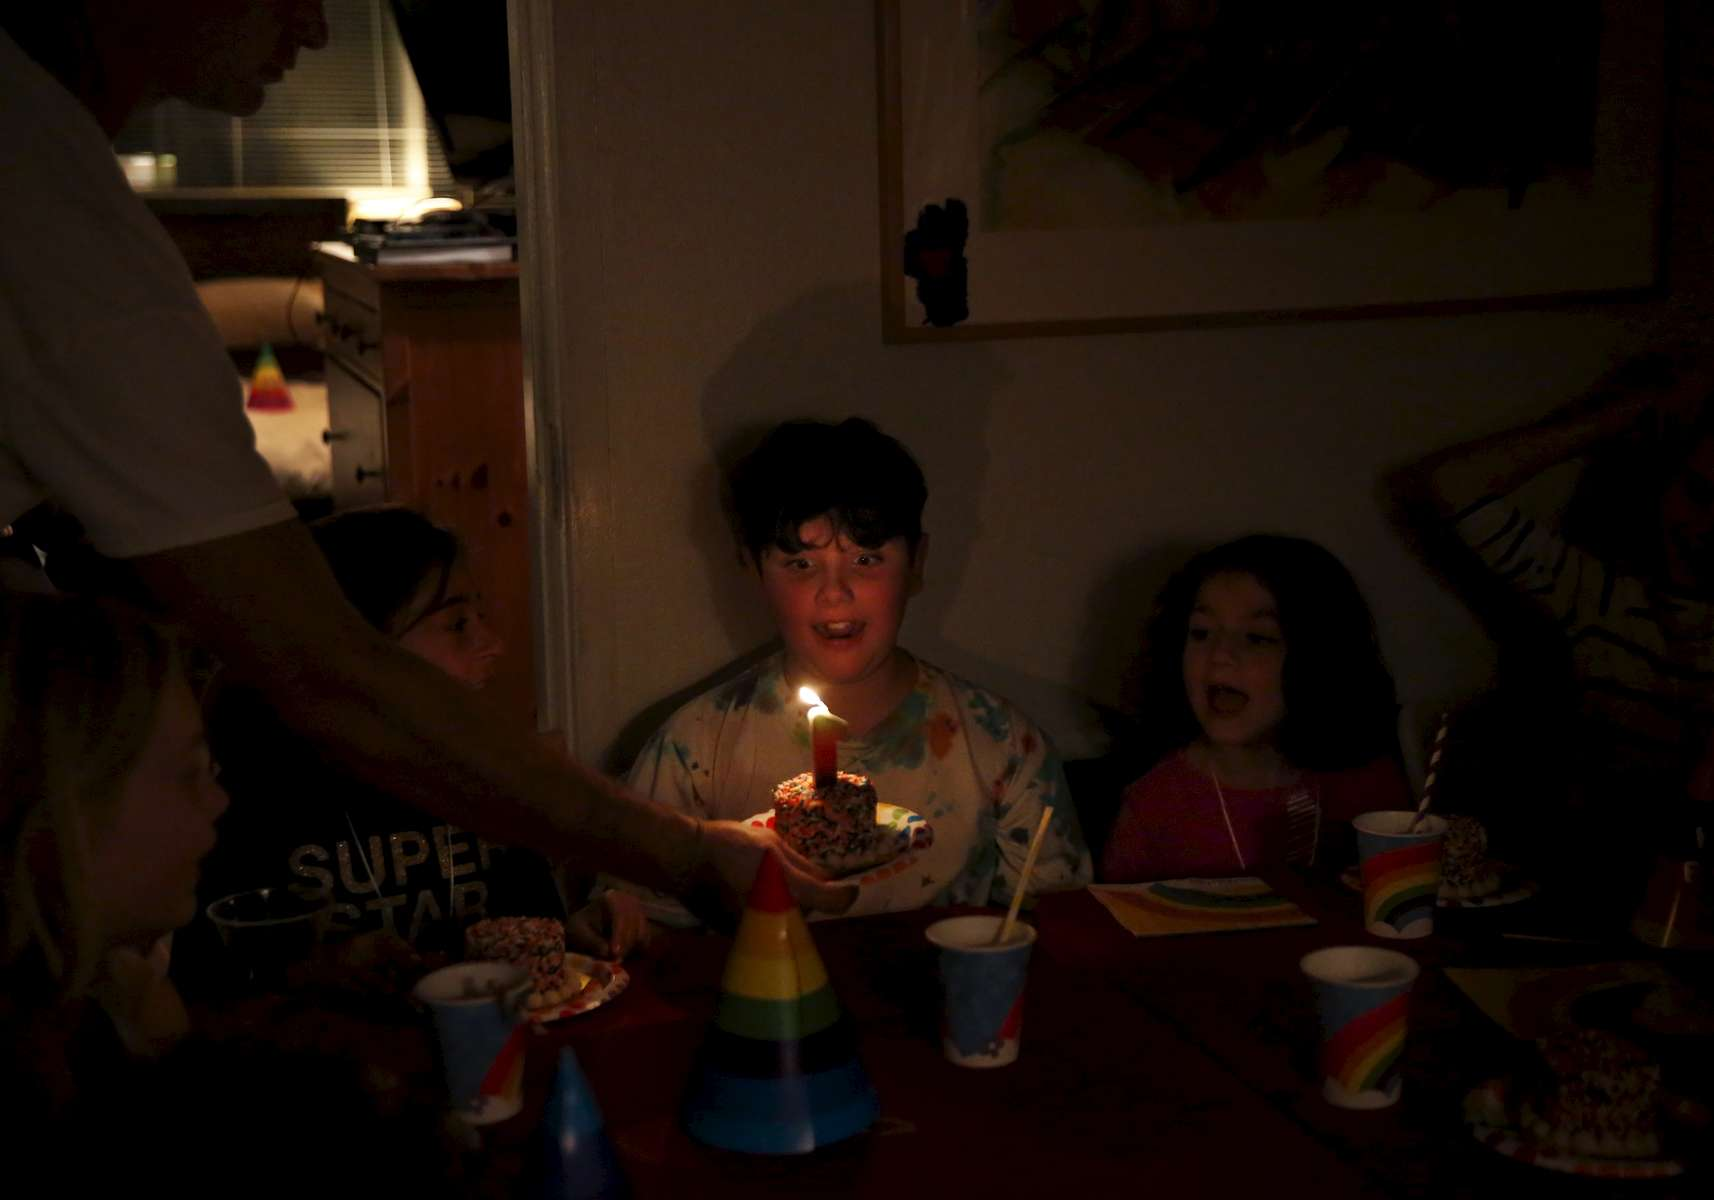 James Kaplan, 9, reacts to his birthday candle and personal cake as everyone sings to him Dec. 1, 2016 during his birthday party in Berkeley, Calif. James counted down the days until his birthday, which he and his mother decided to use the theme of {quote}one year old{quote} to celebrate his first full year living as his true self.